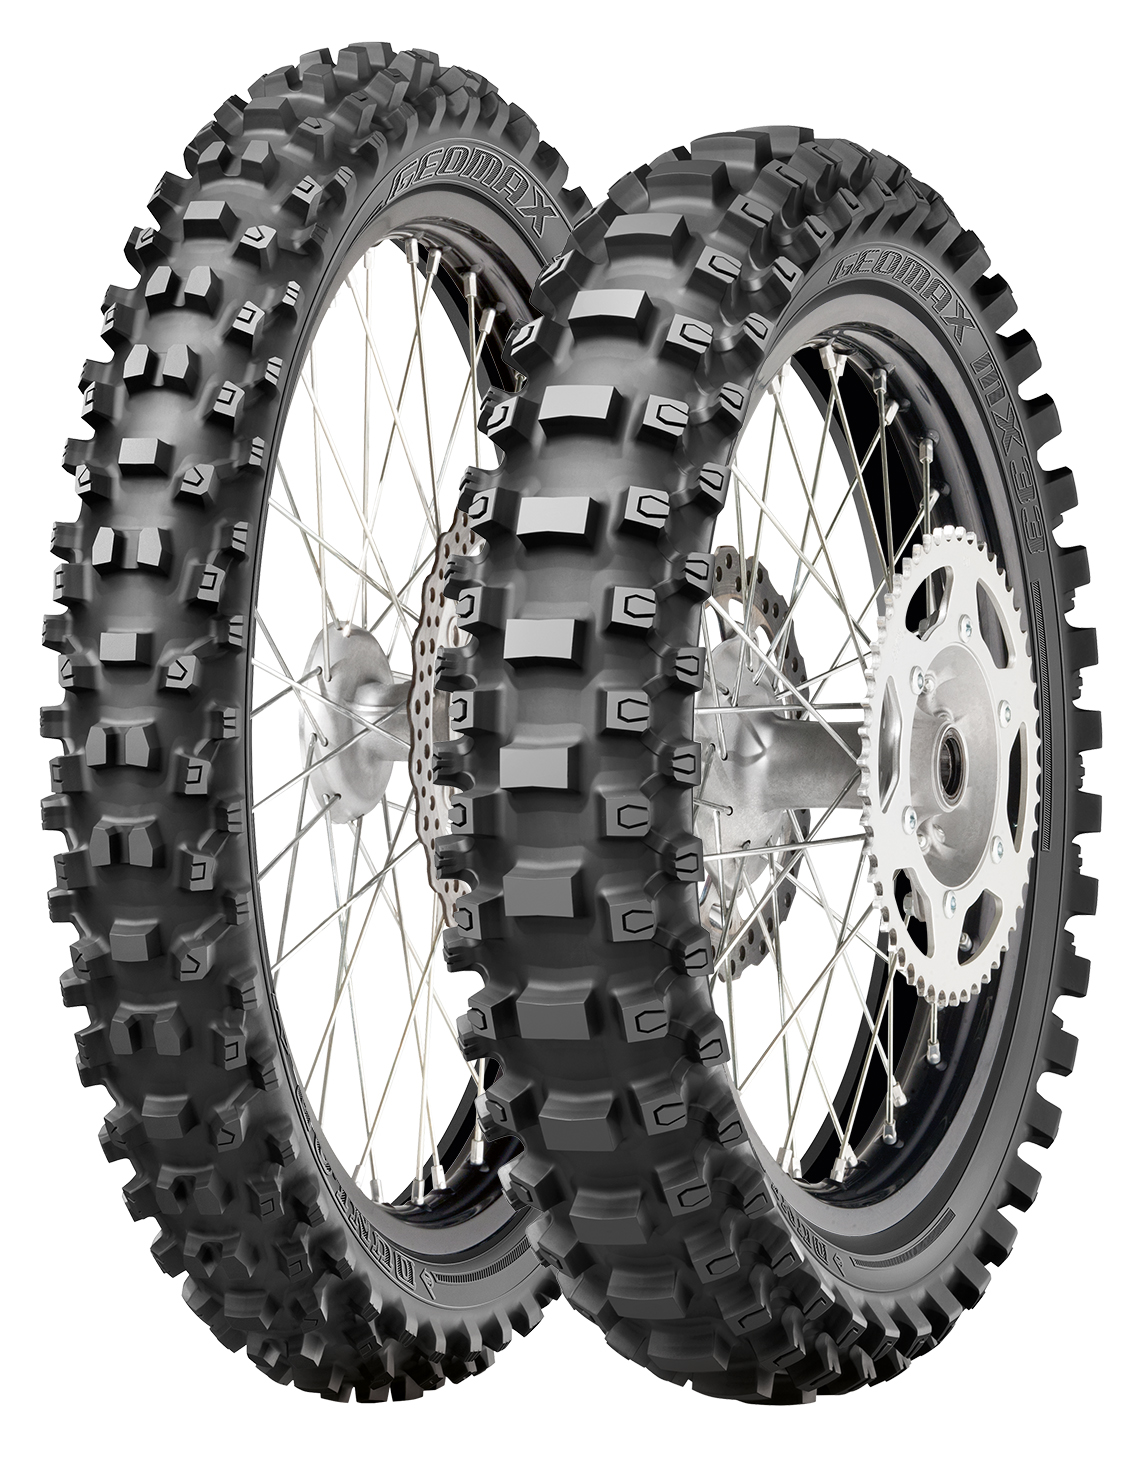 Dunlop Geomax Mx33 Launched